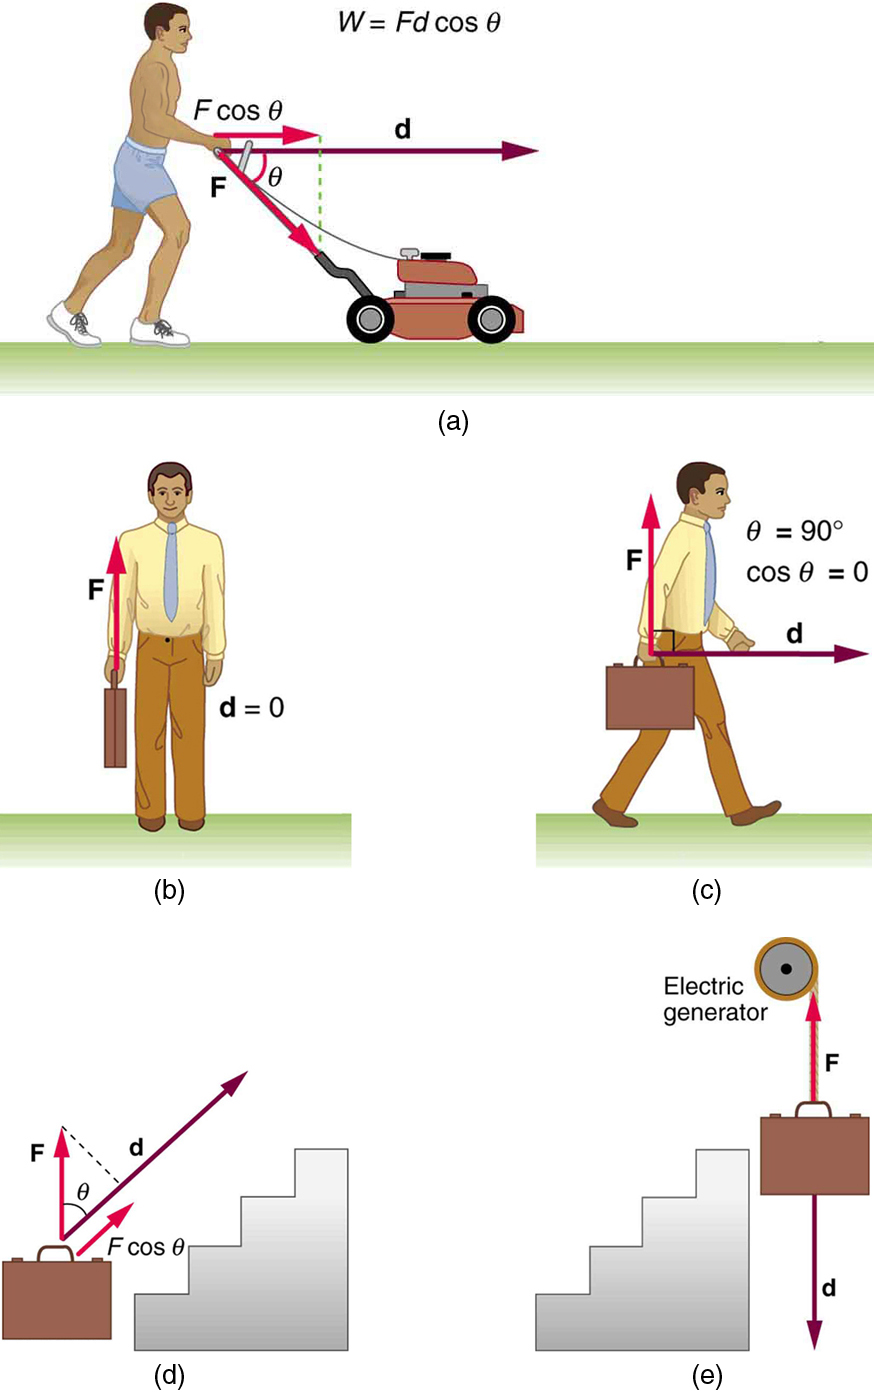 Five drawings labeled a through e. In (a), person pushing a lawn mower with a force F. Force is represented by a vector making an angle theta with the horizontal and displacement of the mower is represented by vector d. The component of vector F along vector d is F cosine theta. Work done by the person W is equal to F d cosine theta. (b) A person is standing with a briefcase in his hand. The force F shown by a vector arrow pointing upwards starting from the handle of briefcase and the displacement d is equal to zero. (c) A person is walking holding the briefcase in his hand. Force vector F is in the vertical direction starting from the handle of briefcase and displacement vector d is in horizontal direction starting from the same point as vector F. The angle between F and d theta is equal to 90 degrees. Cosine theta is equal to zero. (d) A briefcase is shown in front of a set of stairs. A vector d starting from the first stair points along the incline of the stair and a force vector F is in vertical direction starting from the same point as vector d. The angle between them is theta. A component of vector F along vector d is F d cosine theta. (e) A briefcase is shown lowered vertically down from an electric generator. The displacement vector d points downwards and force vector F points upwards acting on the briefcase.